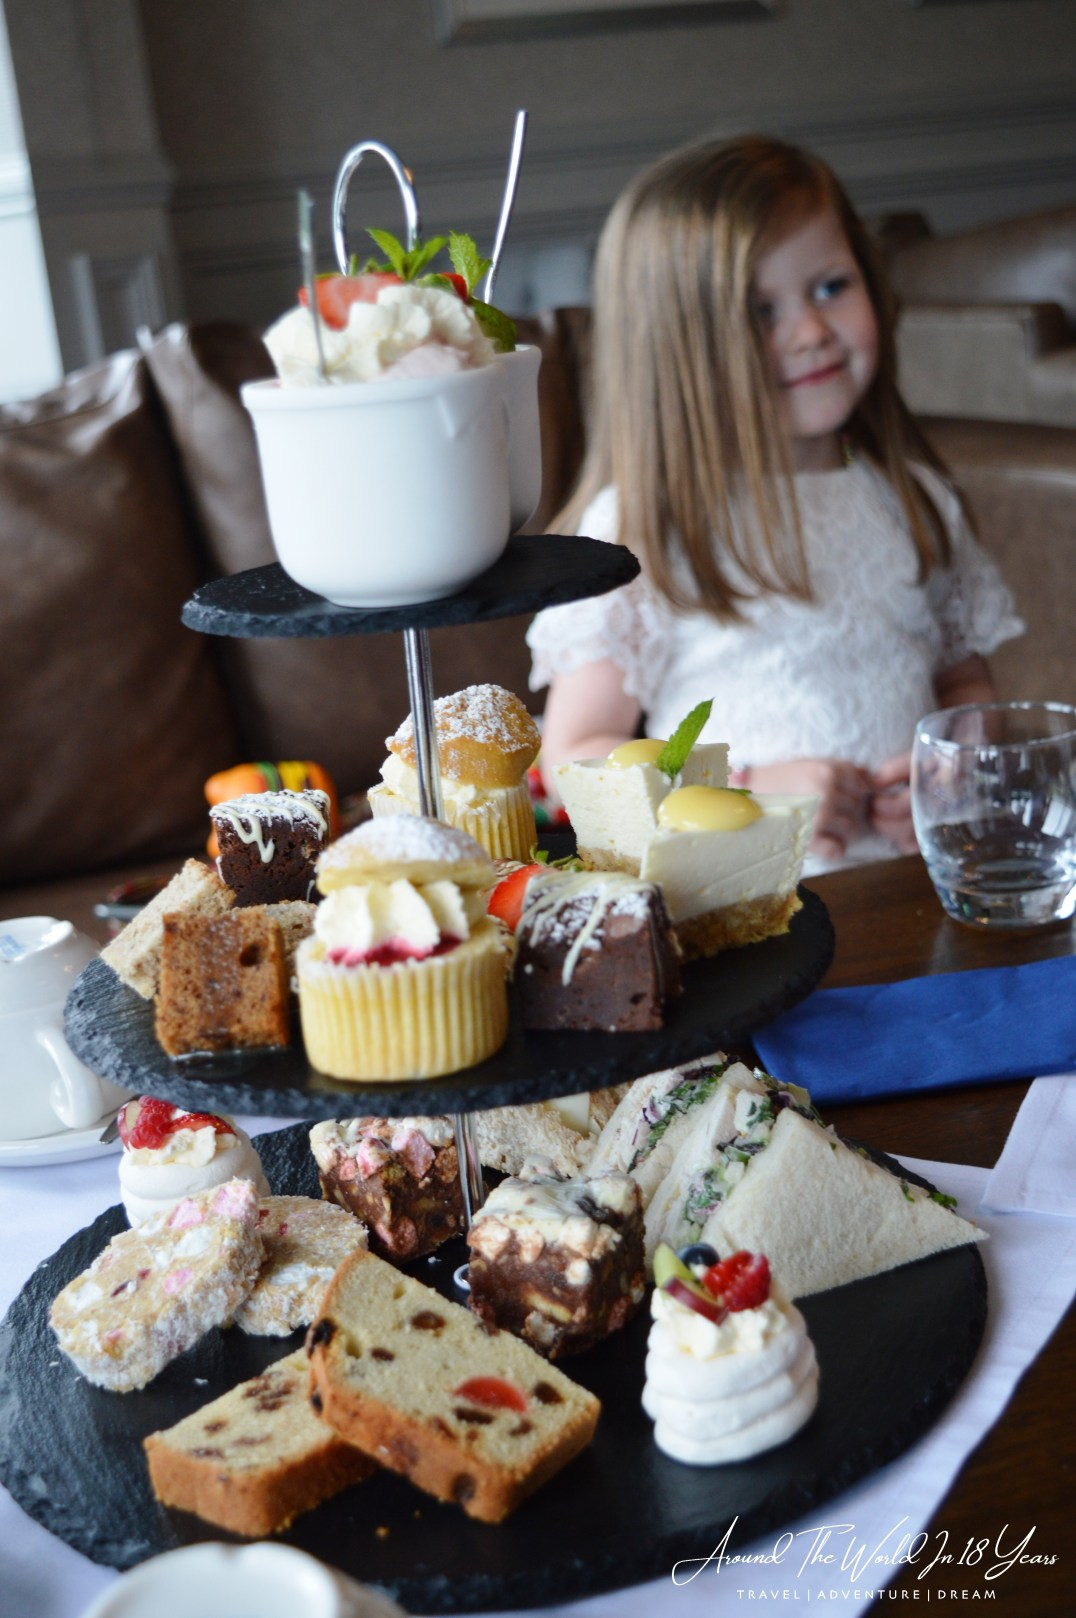 Mellon Country Inn - Afternoon Tea